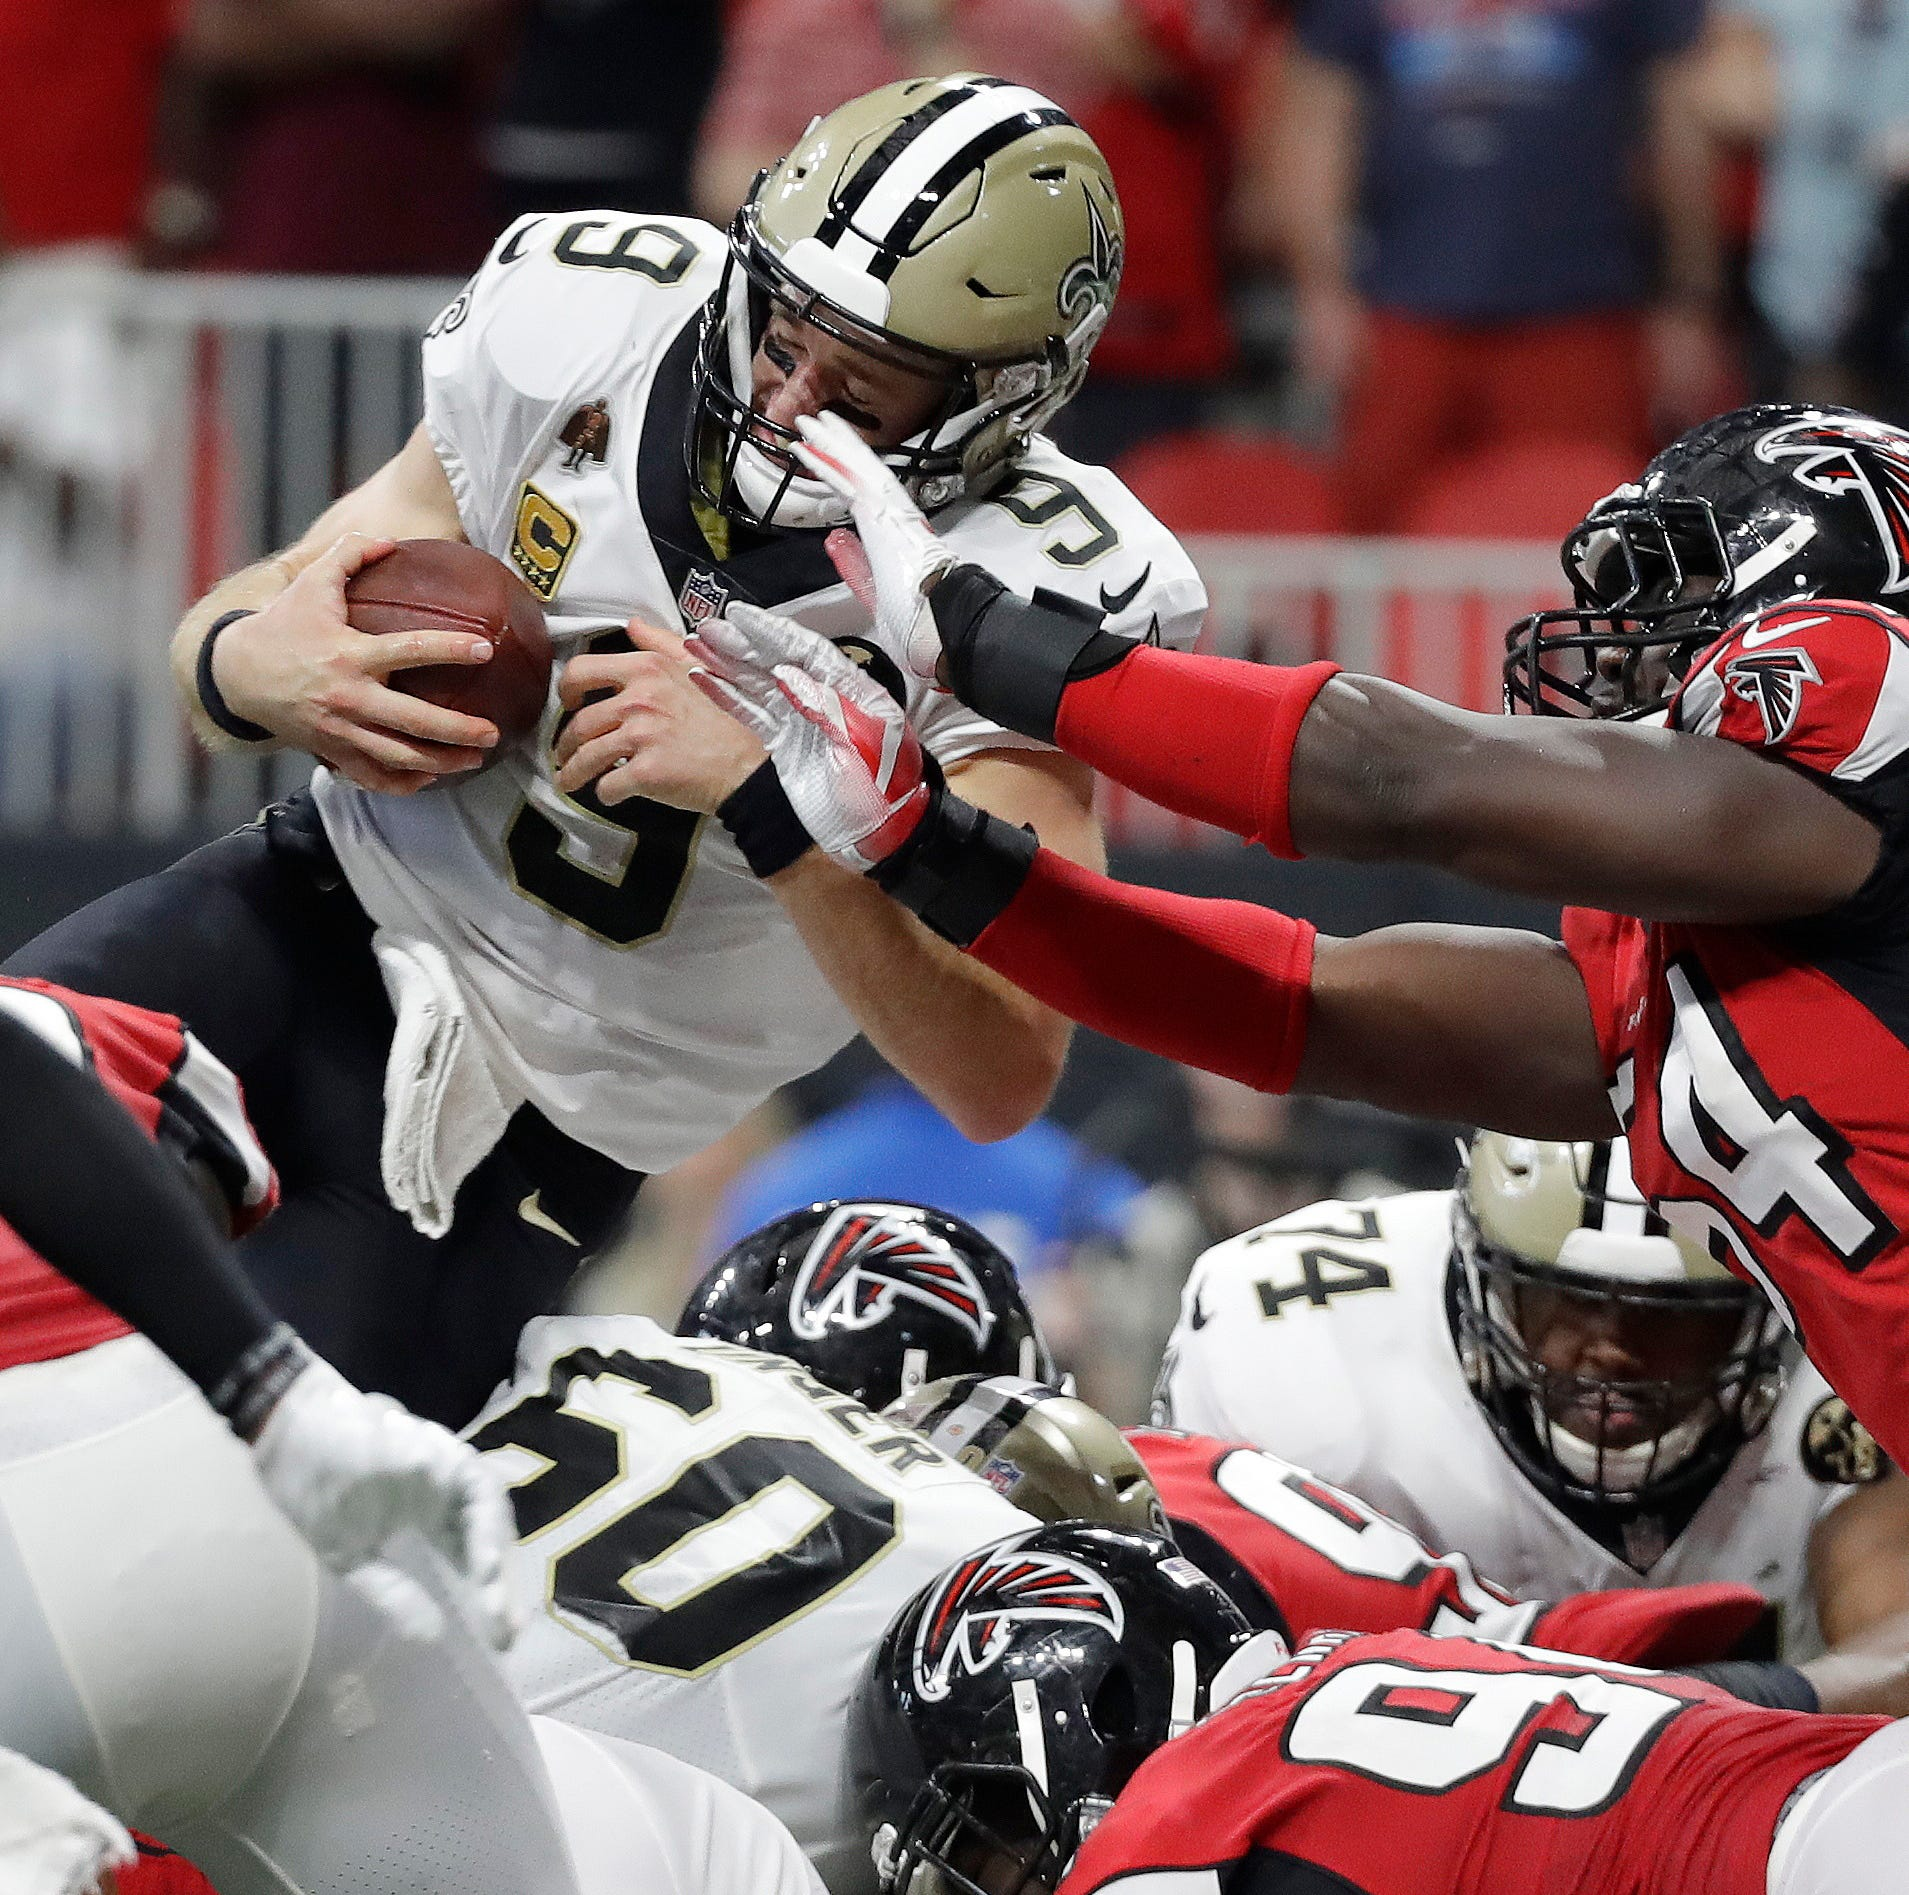 Drew Brees' touchdown run in overtime lifts Saints past Falcons